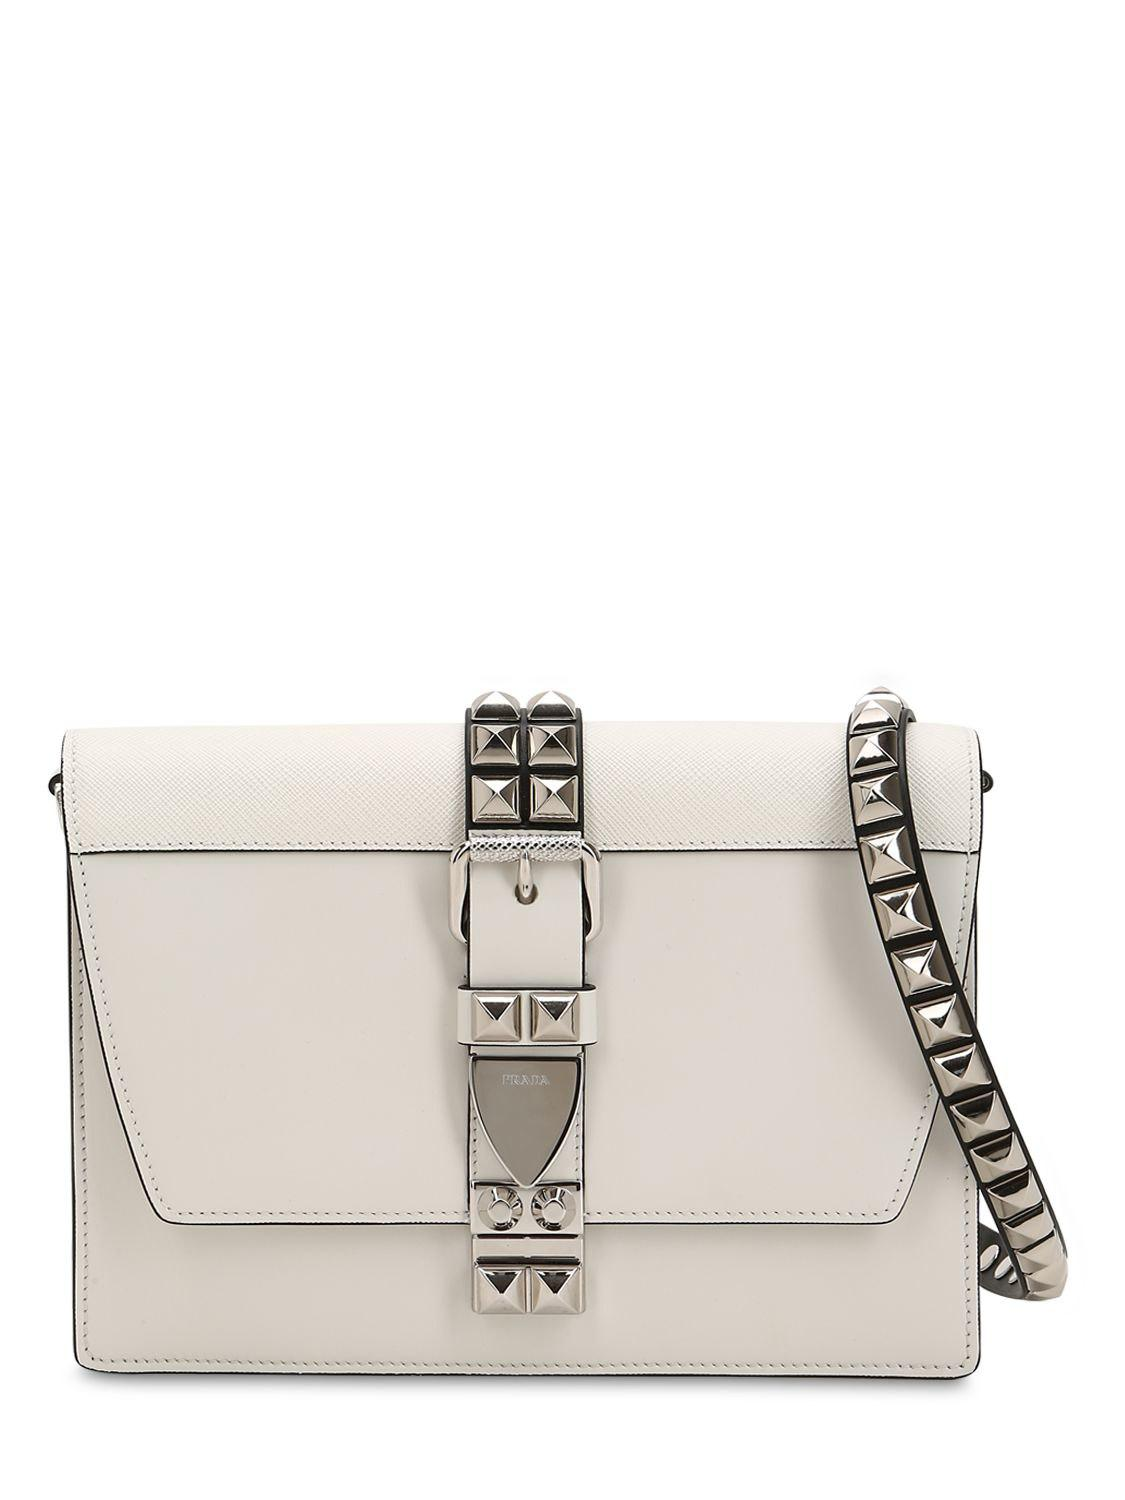 50055817c45e Prada Elektra Studded Leather Shoulder Bag in White - Lyst